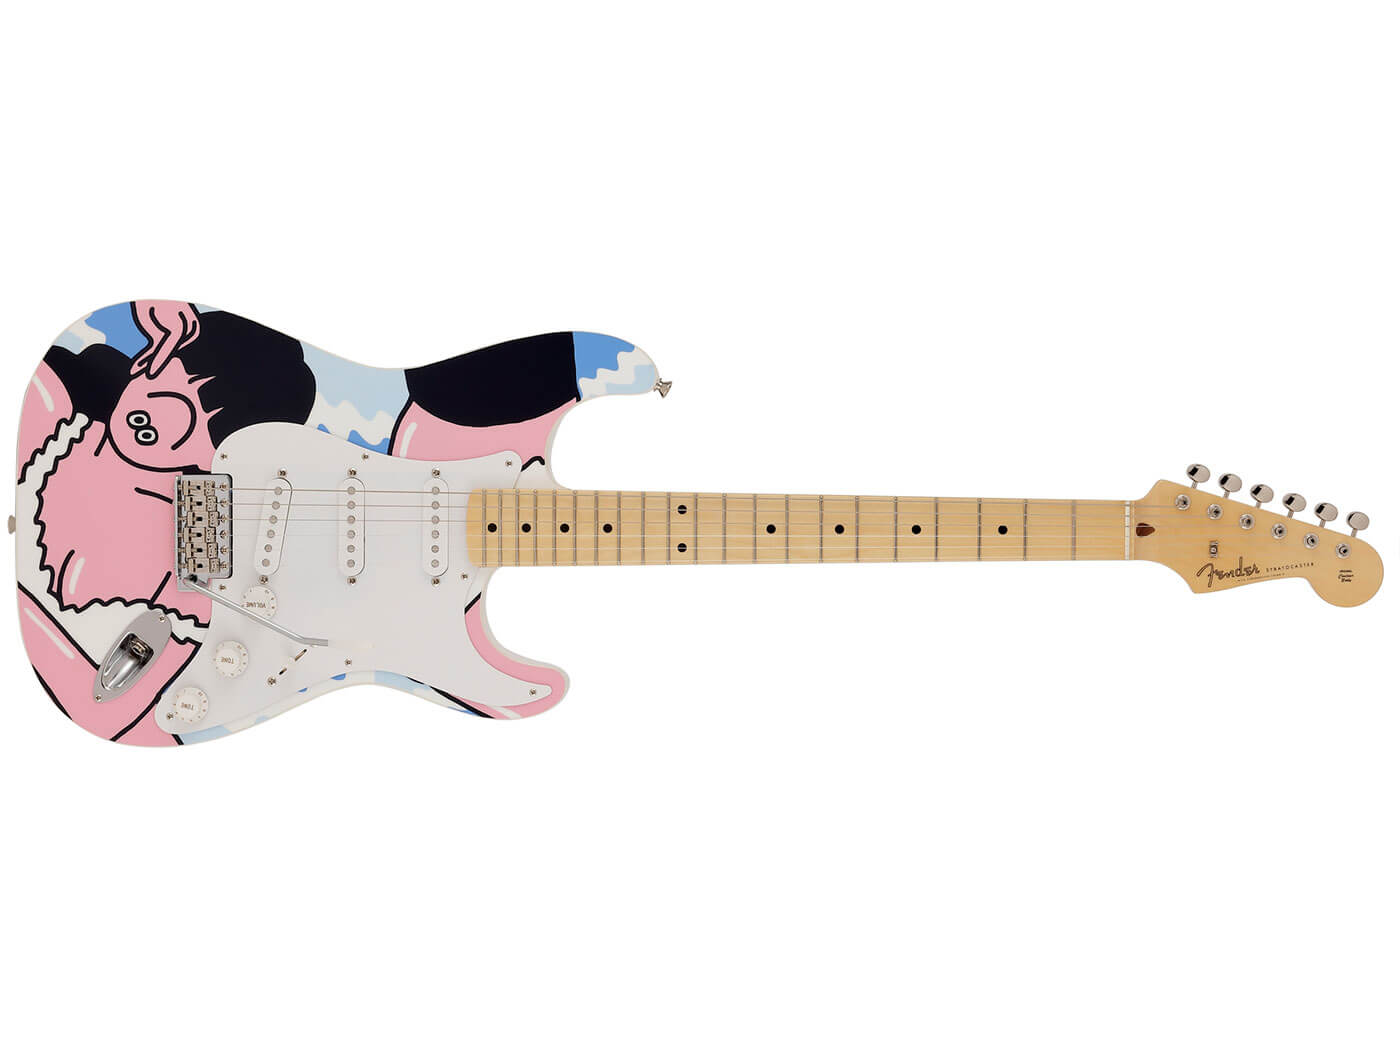 The FACE Art Gallery Stratocaster